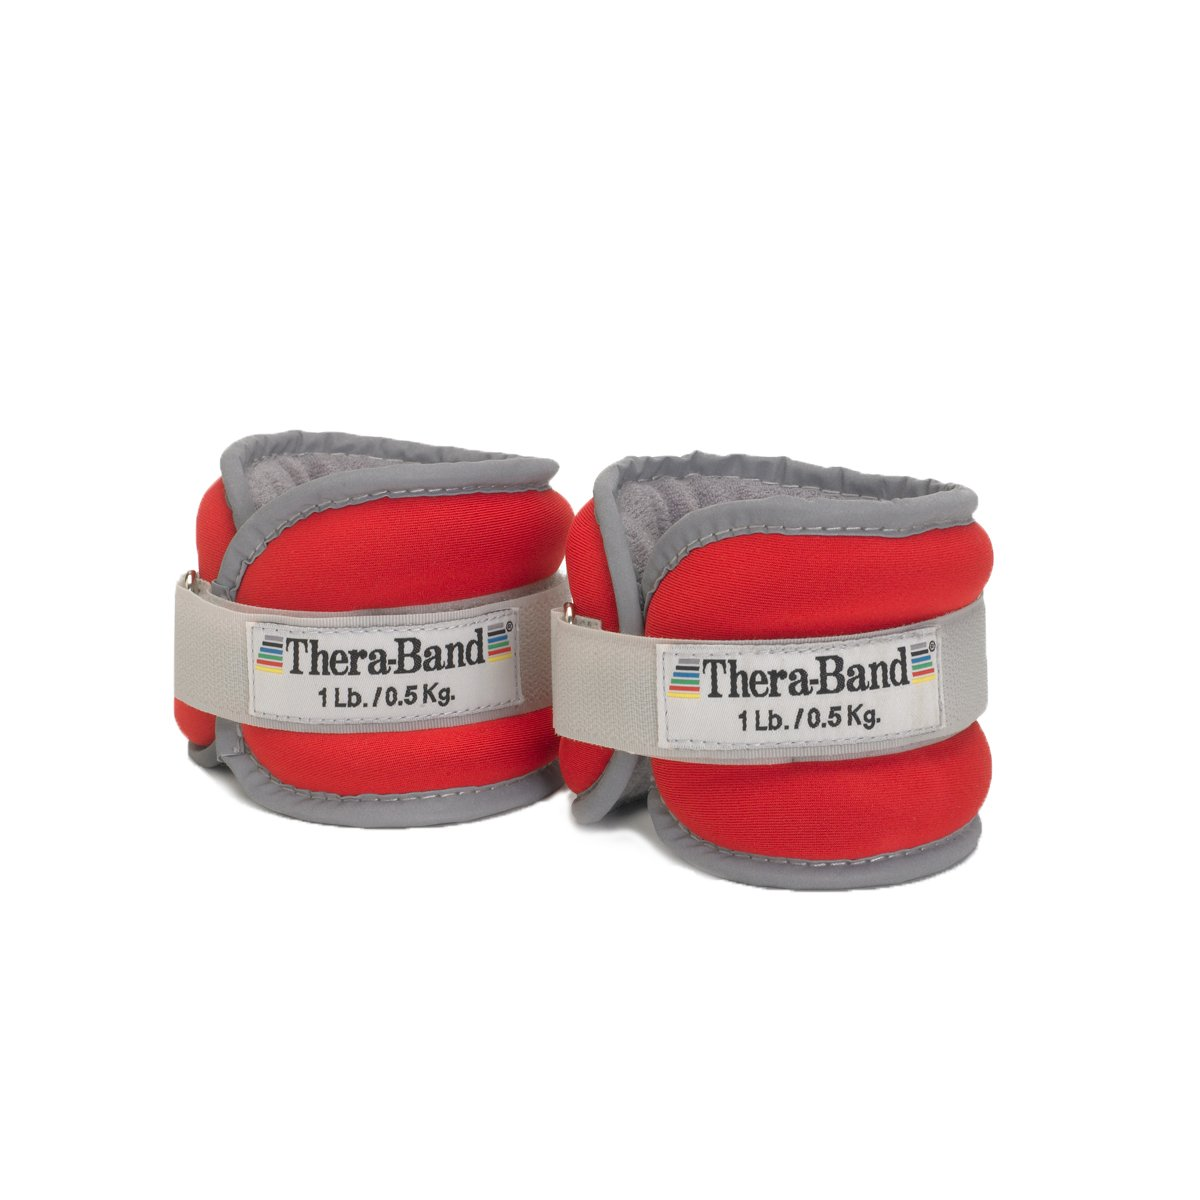 THERABAND Comfort Fit Ankle & Wrist Weights